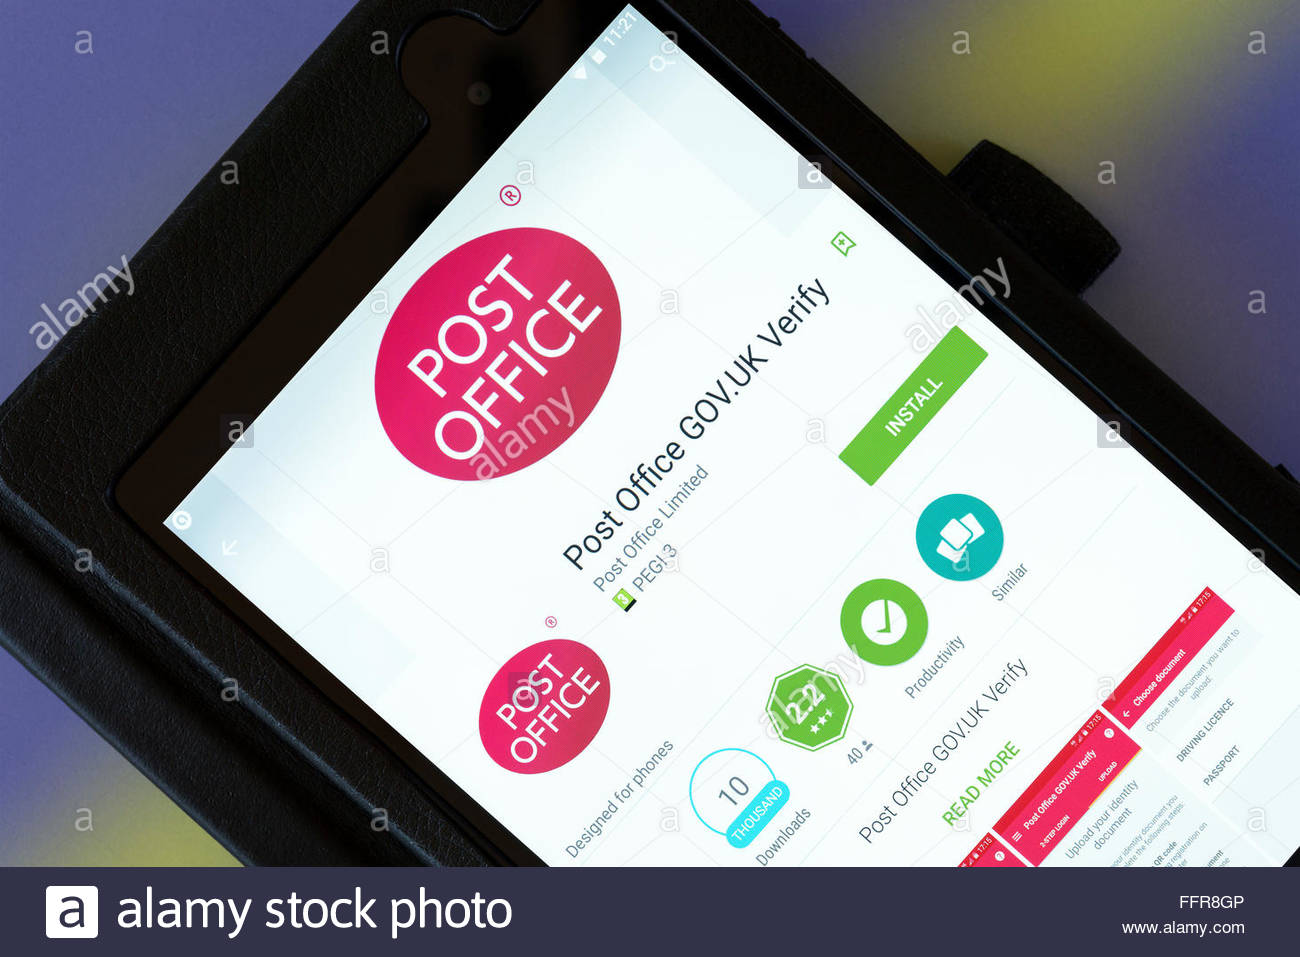 GOV.UK Verify identity app used on the Post Office app on an android tablet PC, Dorset, England, UK - Stock Image